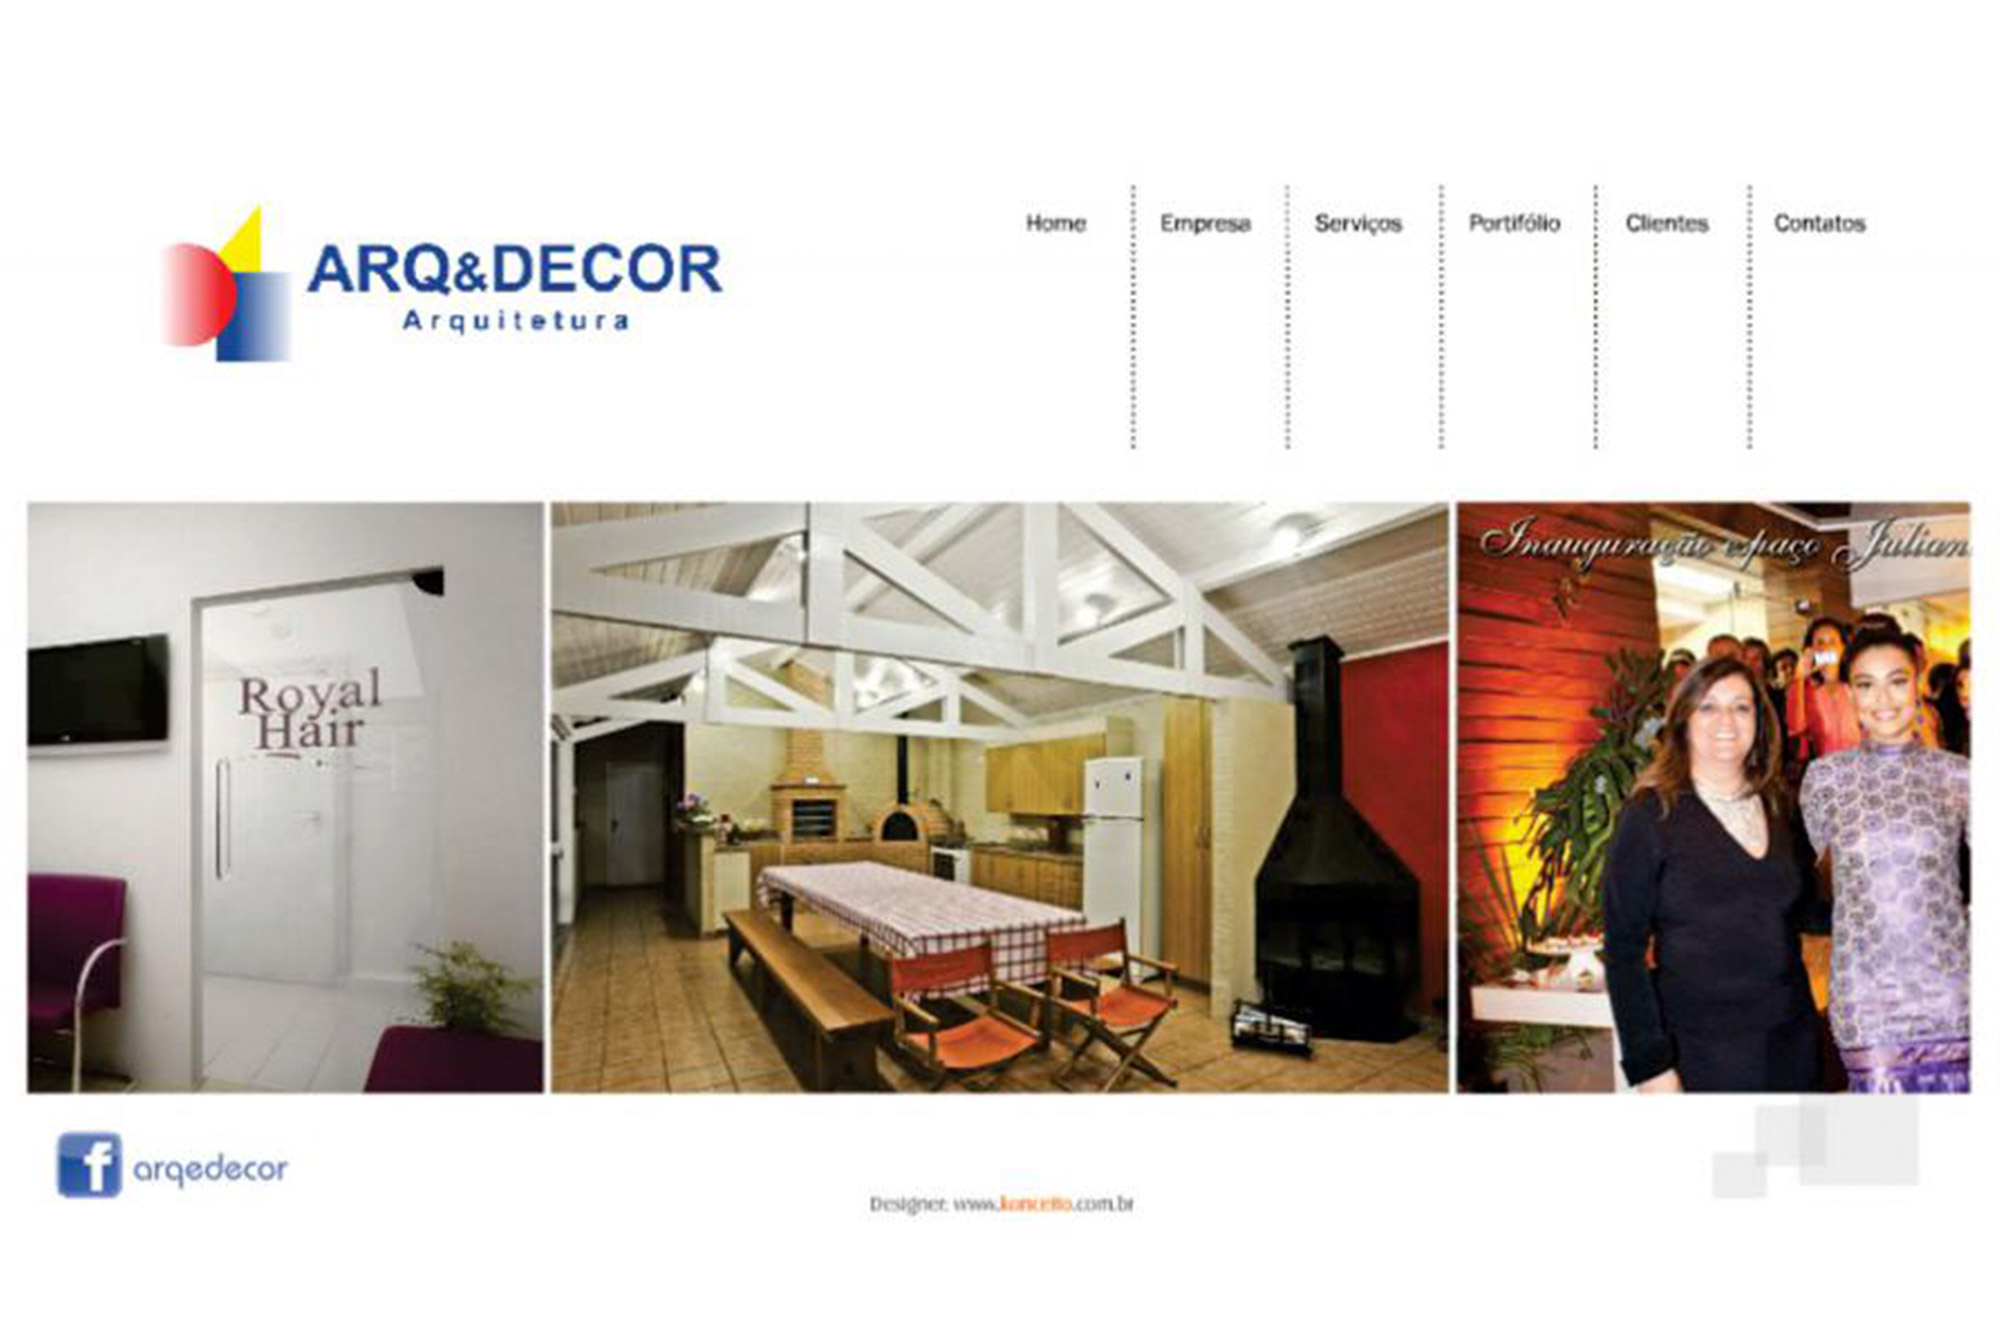 [Arq & Decor]